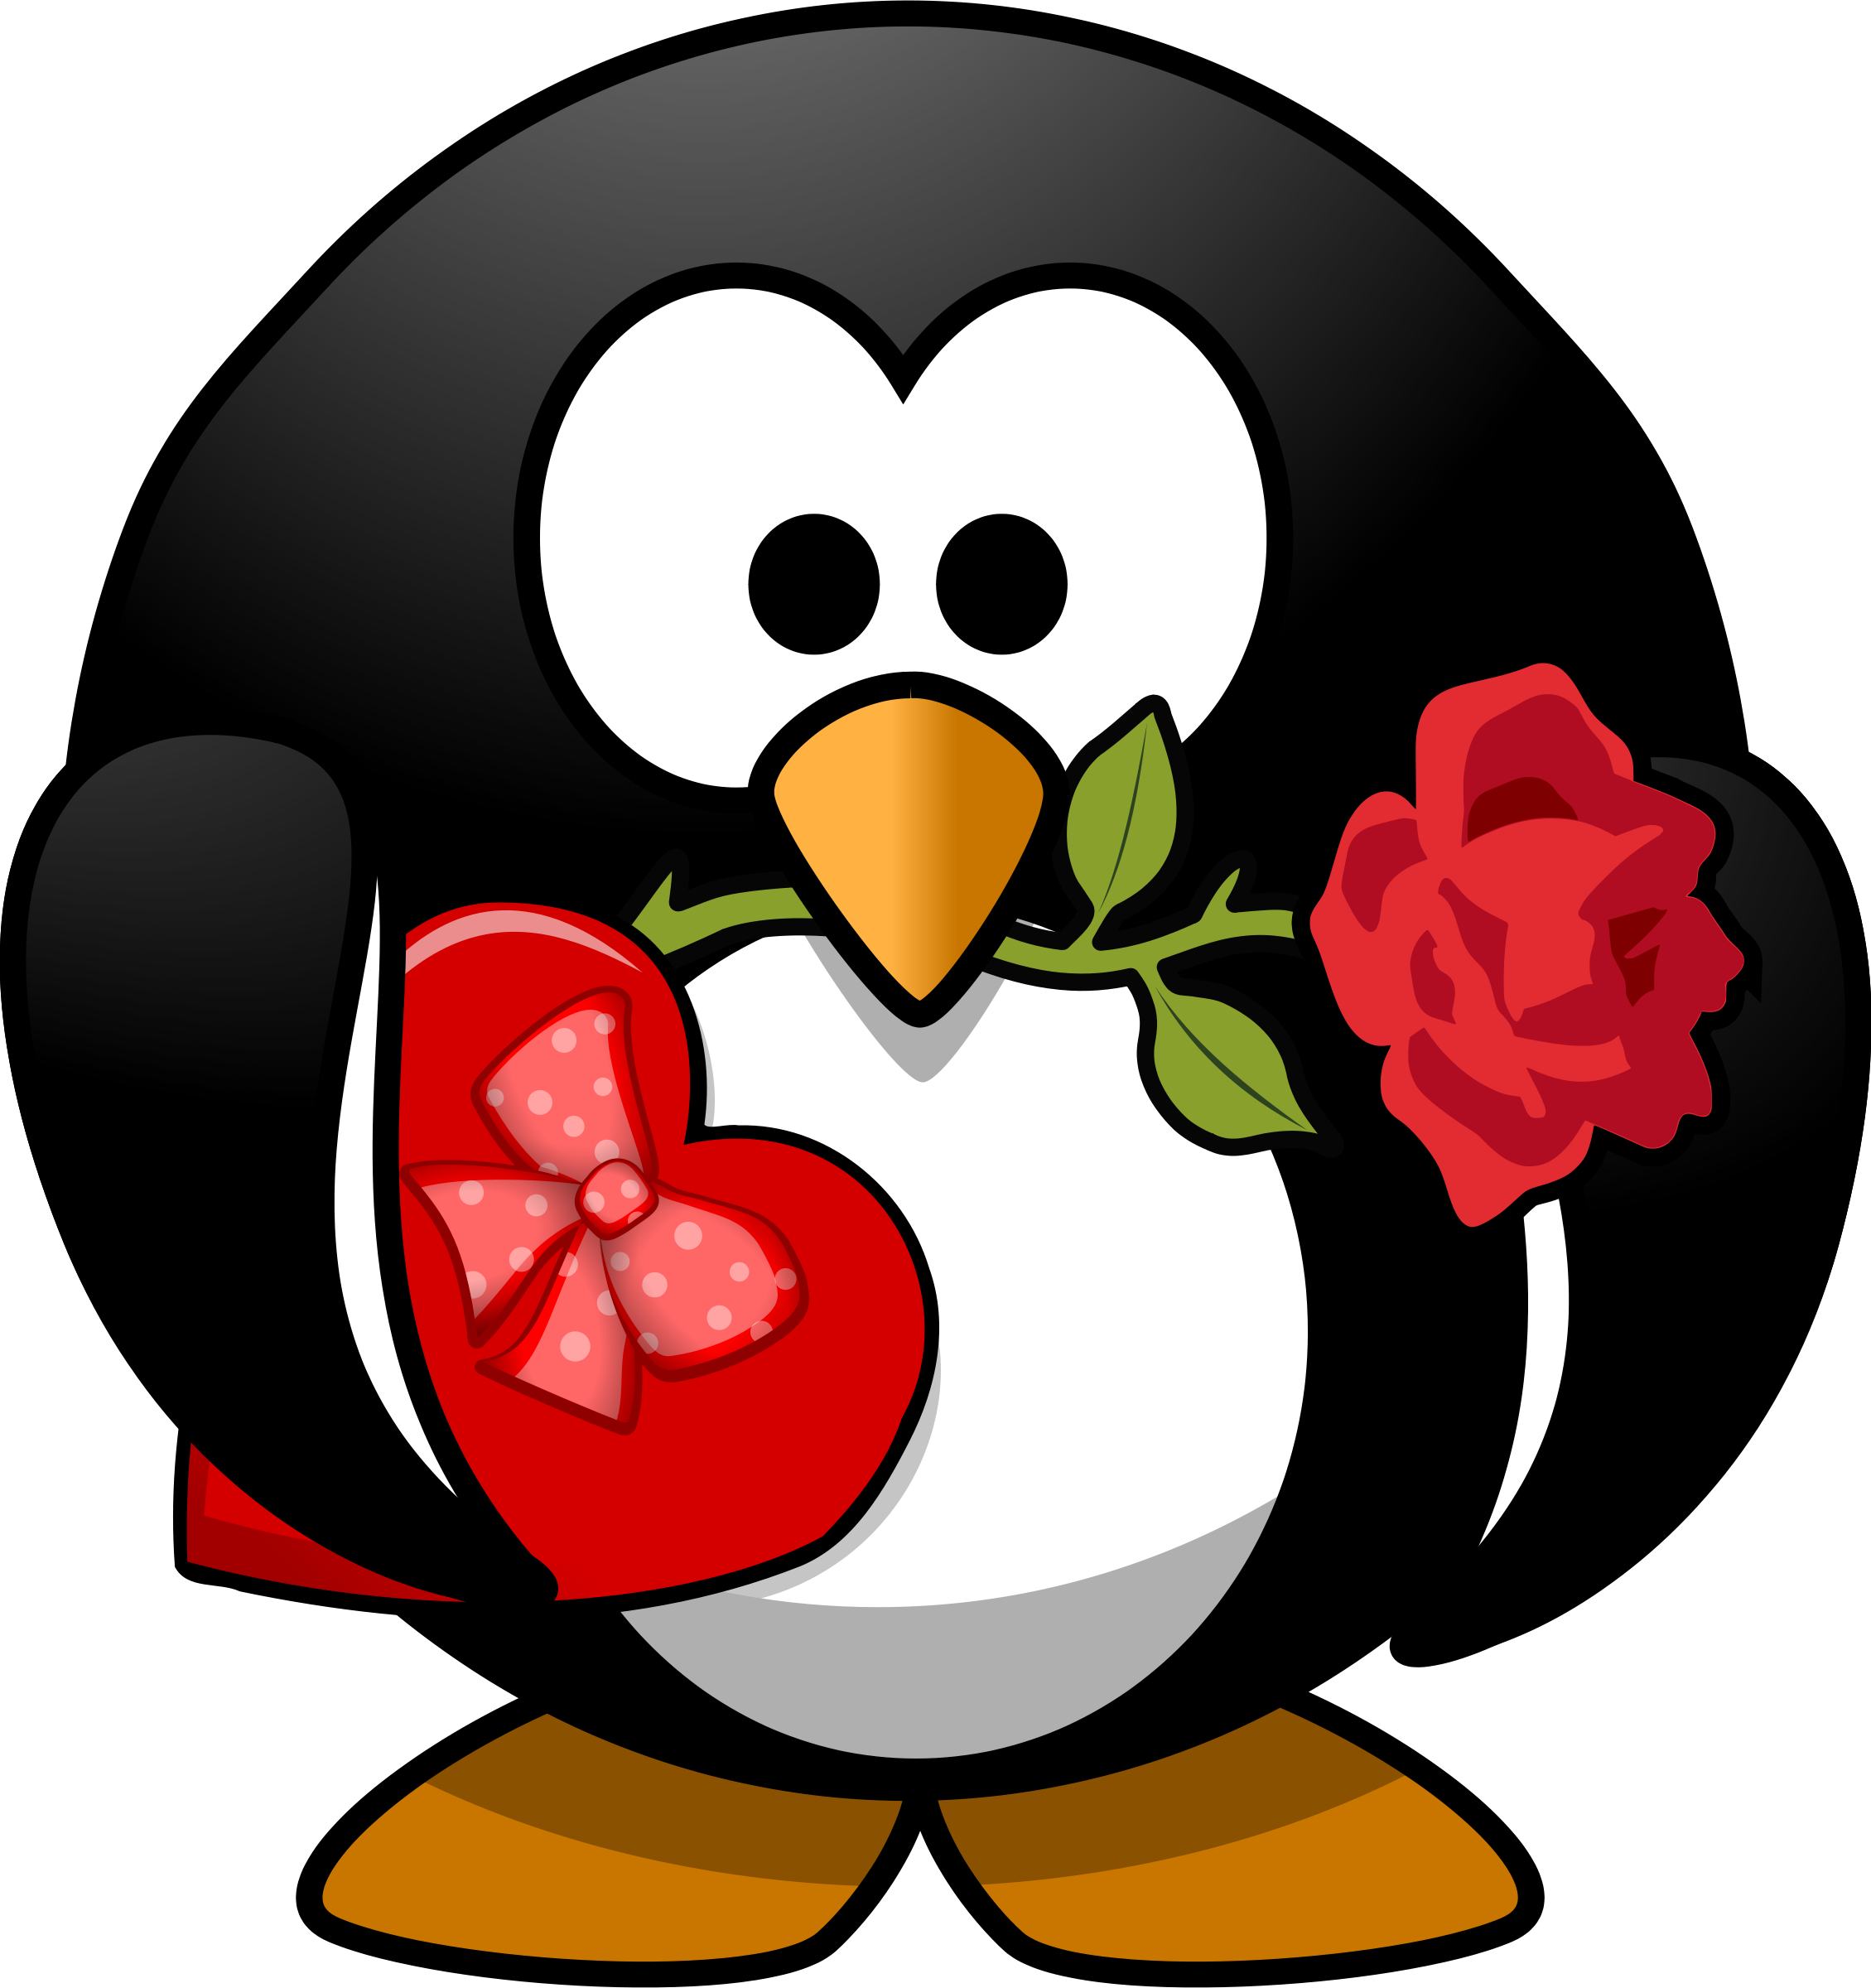 Image Of Valentine Clipart 4 .-Image of valentine clipart 4 .-7